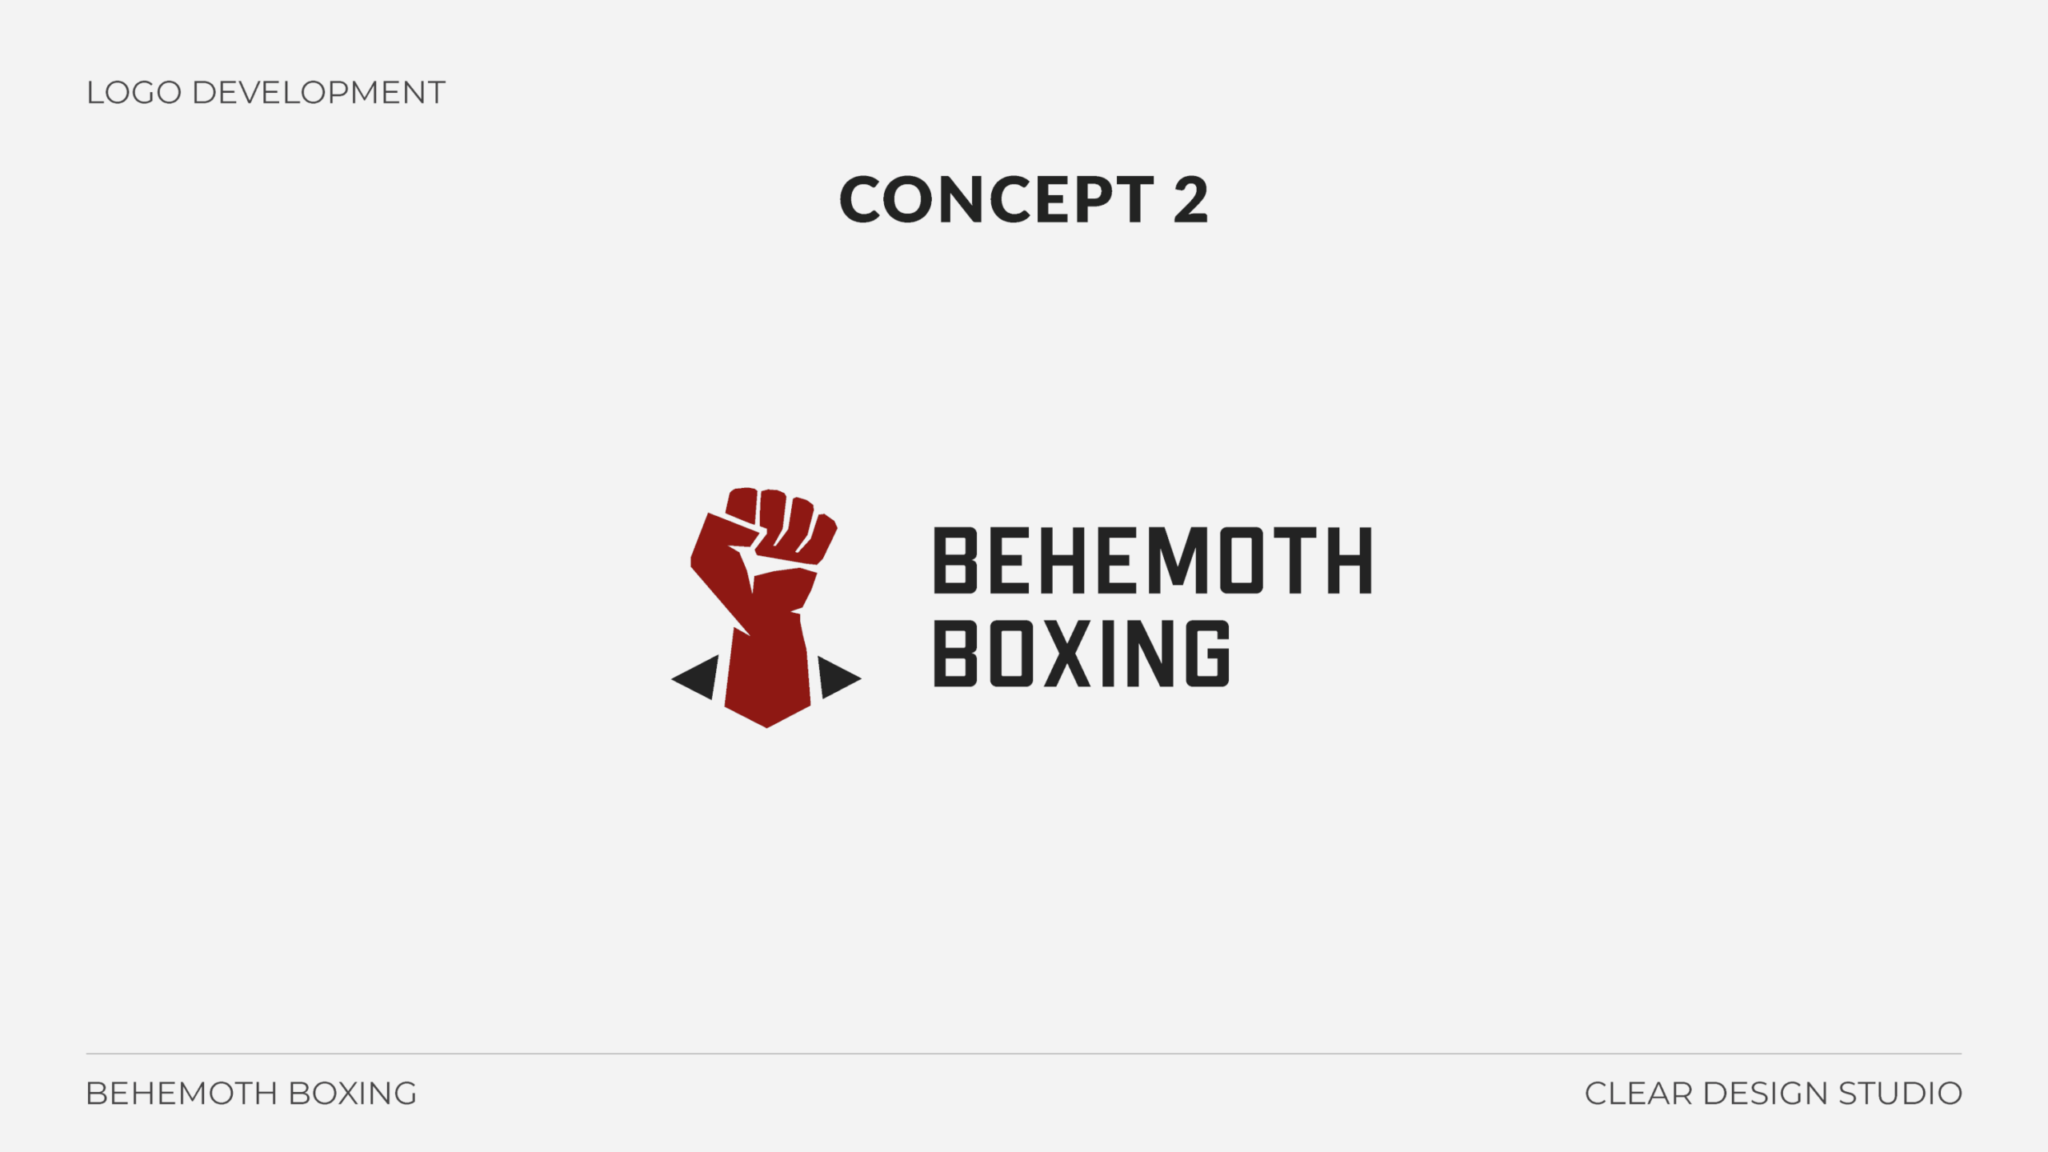 Behemoth Boxing Logo Design Concept 2